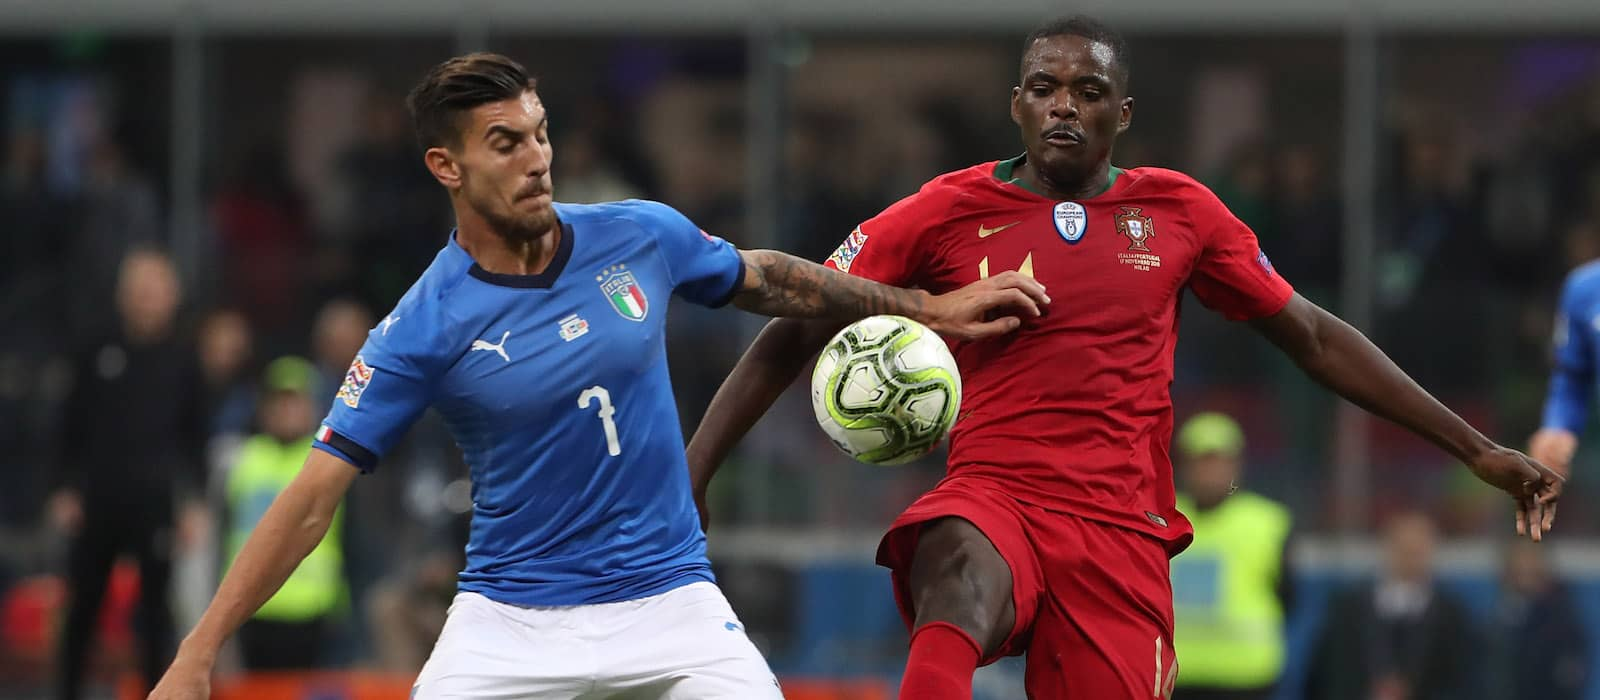 Jose Mourinho keen on Lorenzo Pellegrini bargain transfer: report